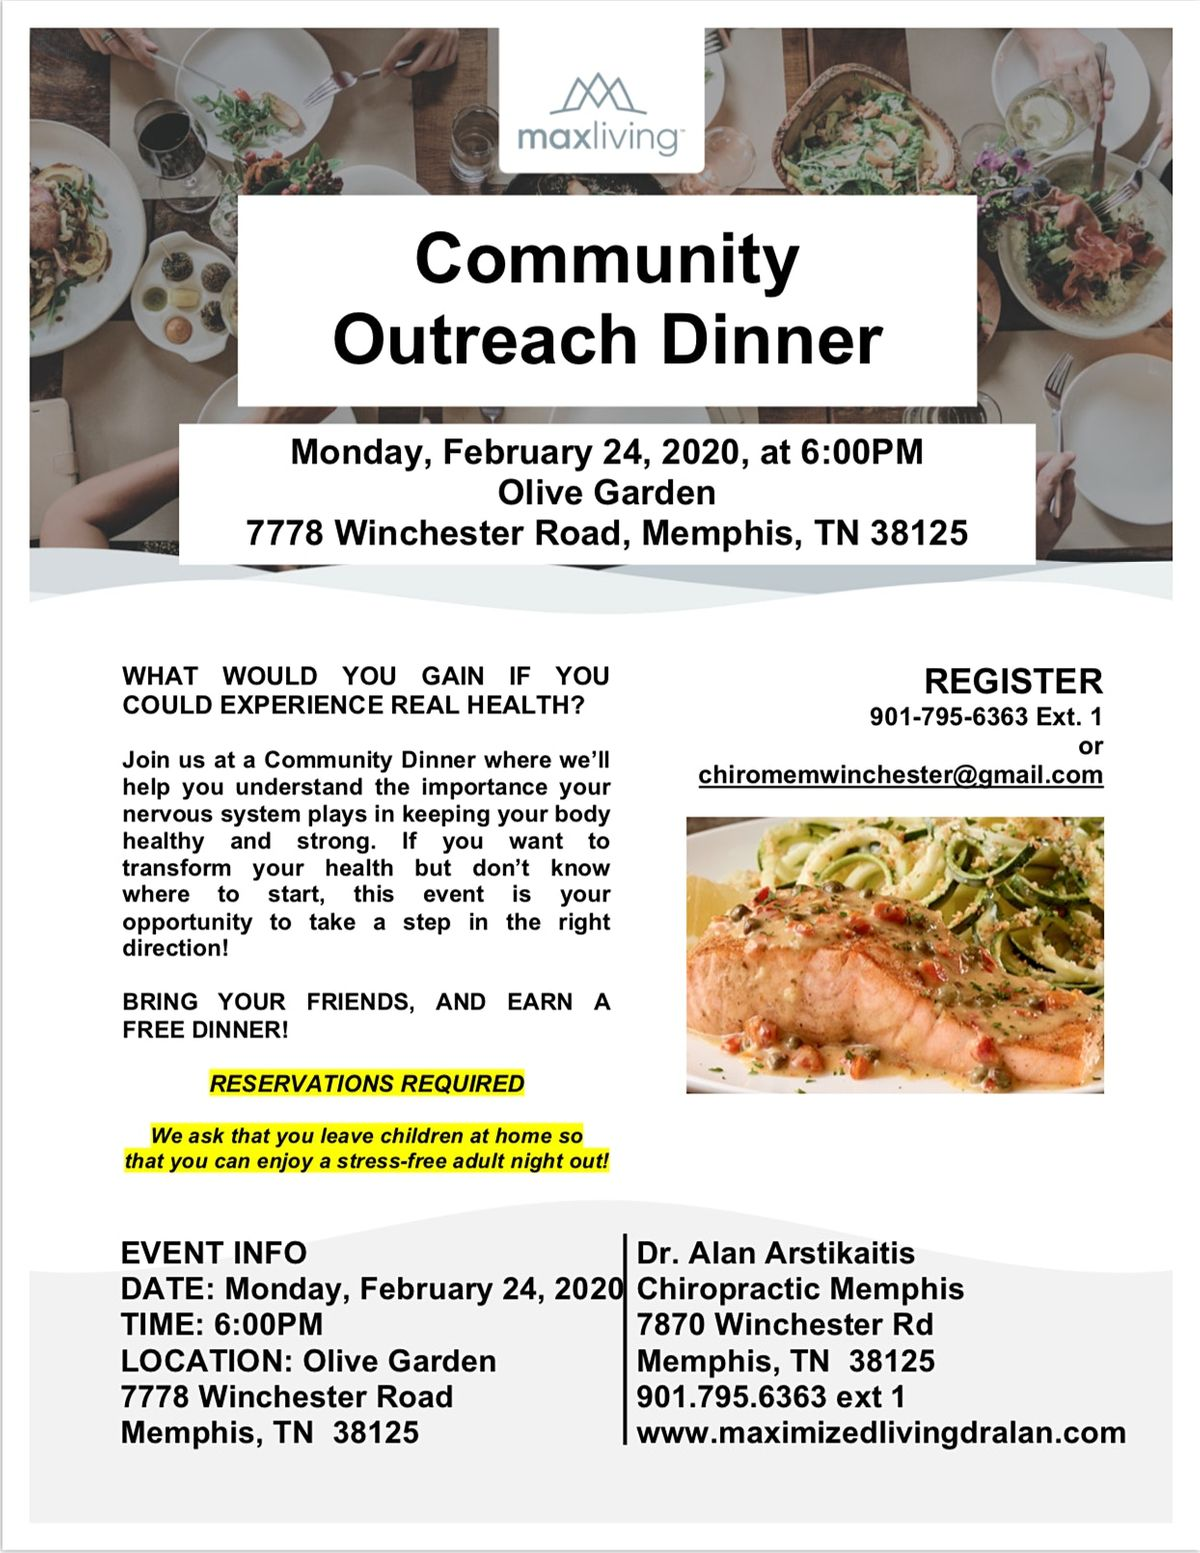 Community Outreach Dinner At Olive Garden Memphis